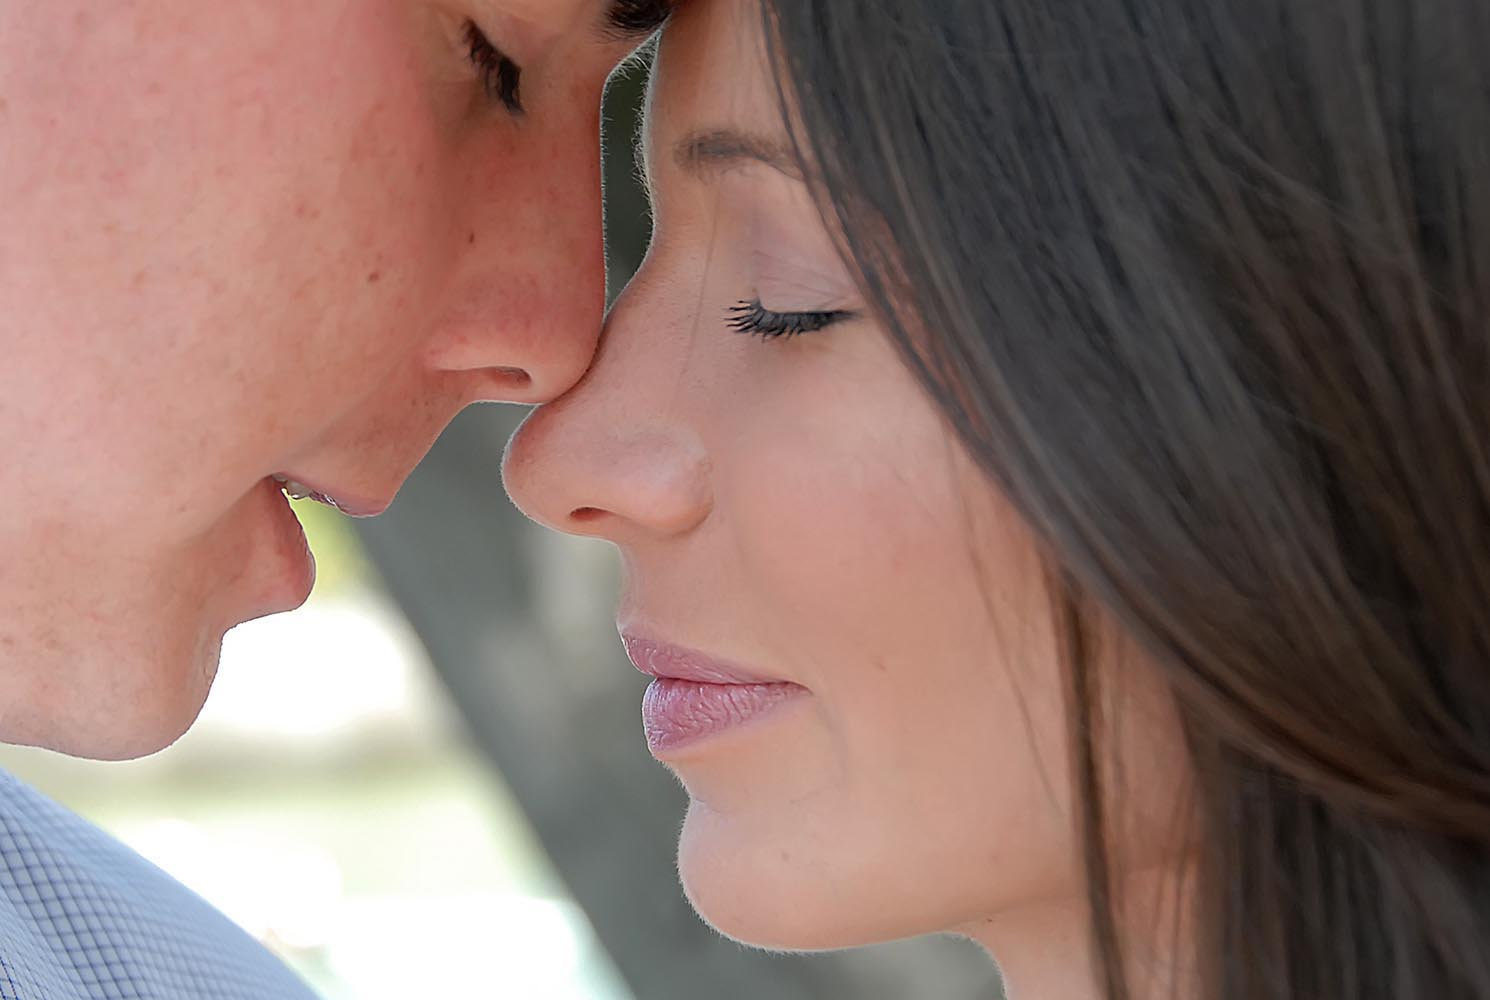 Close-up portrait of newly weds, nose to nose